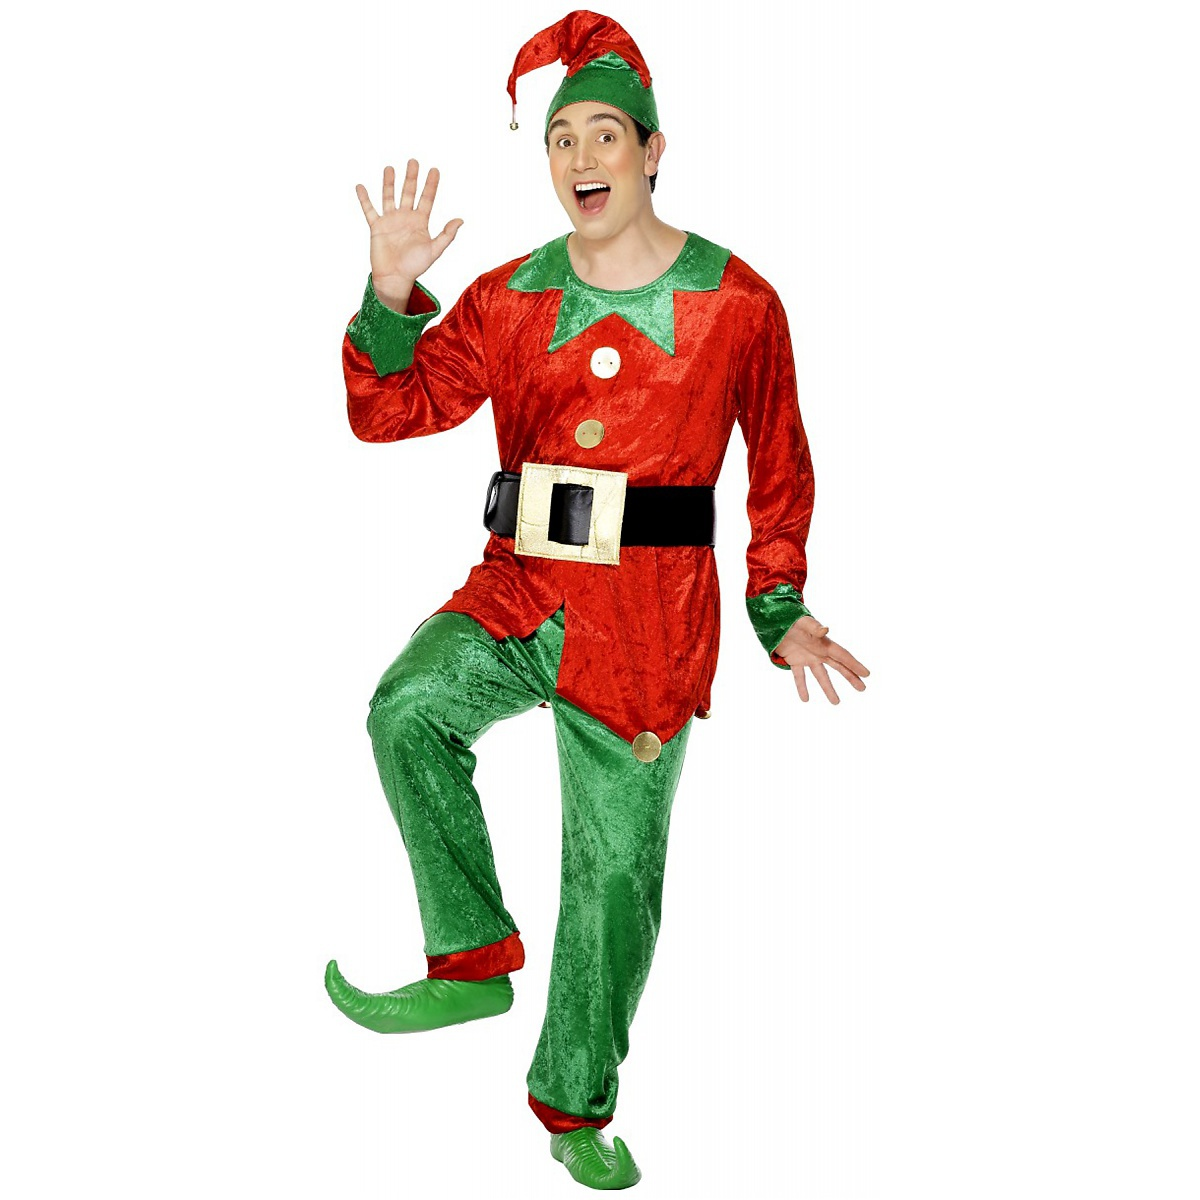 Smiffys Elf Adult Mens Santa Claus Helper Fancy Dress Christmas Costume at Sears.com